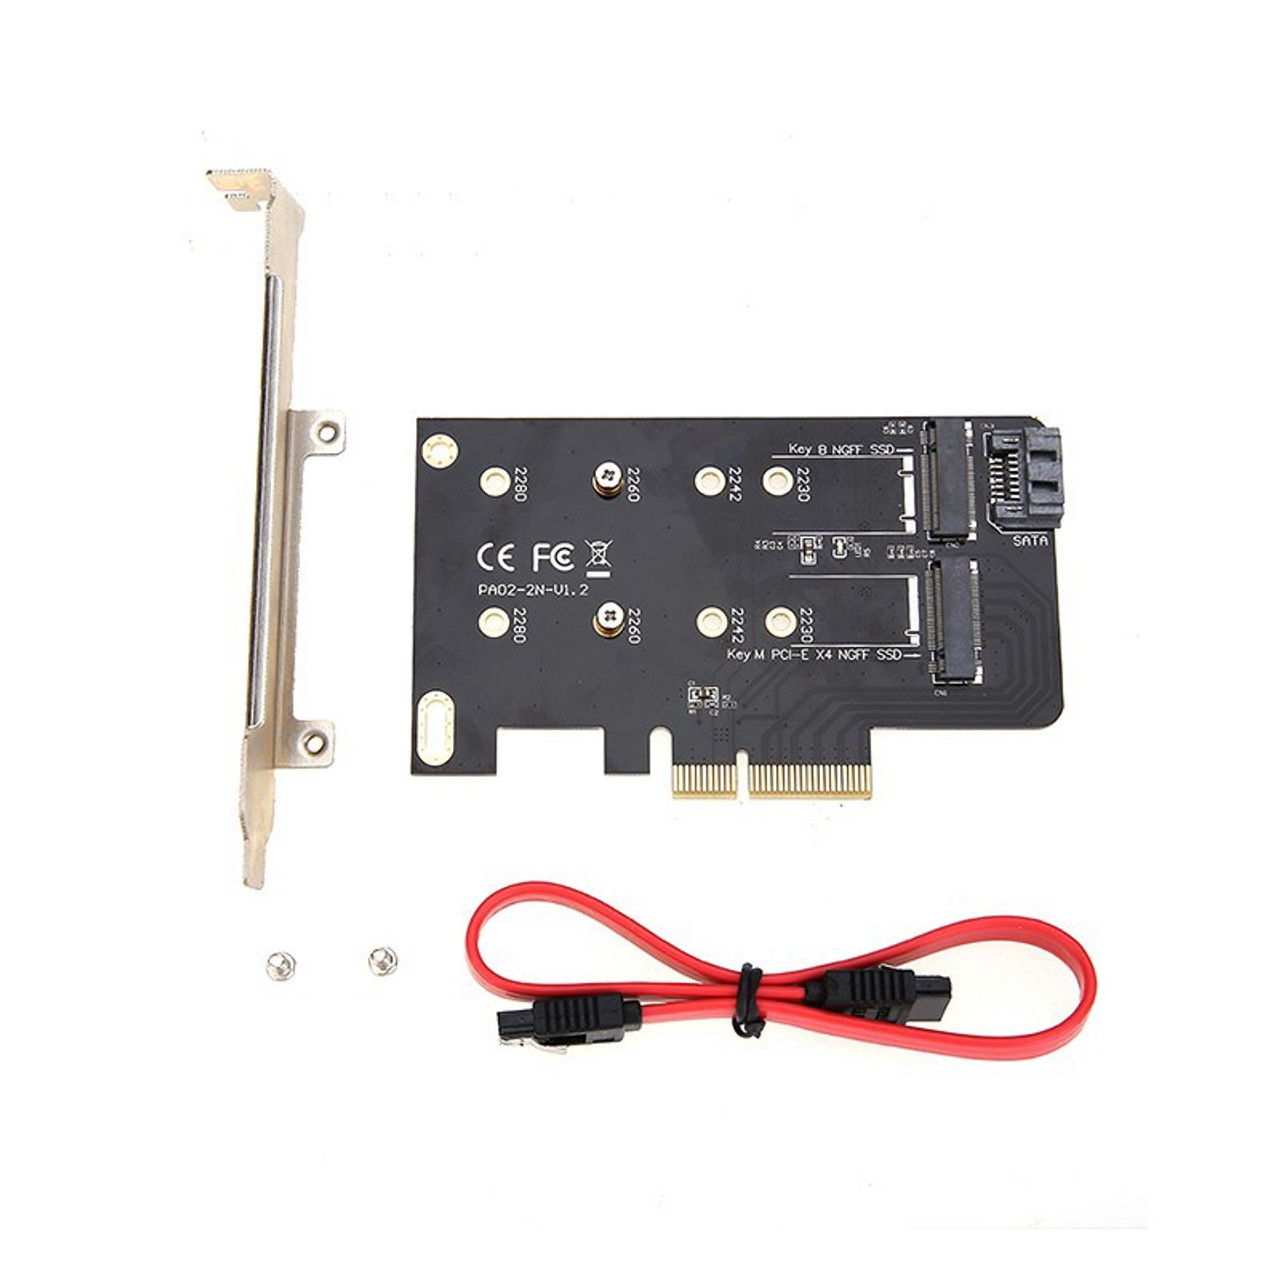 Product image for Simplecom EC412 Dual M.2 to PCI-E x4 and SATA Expansion Card | CX Computer Superstore